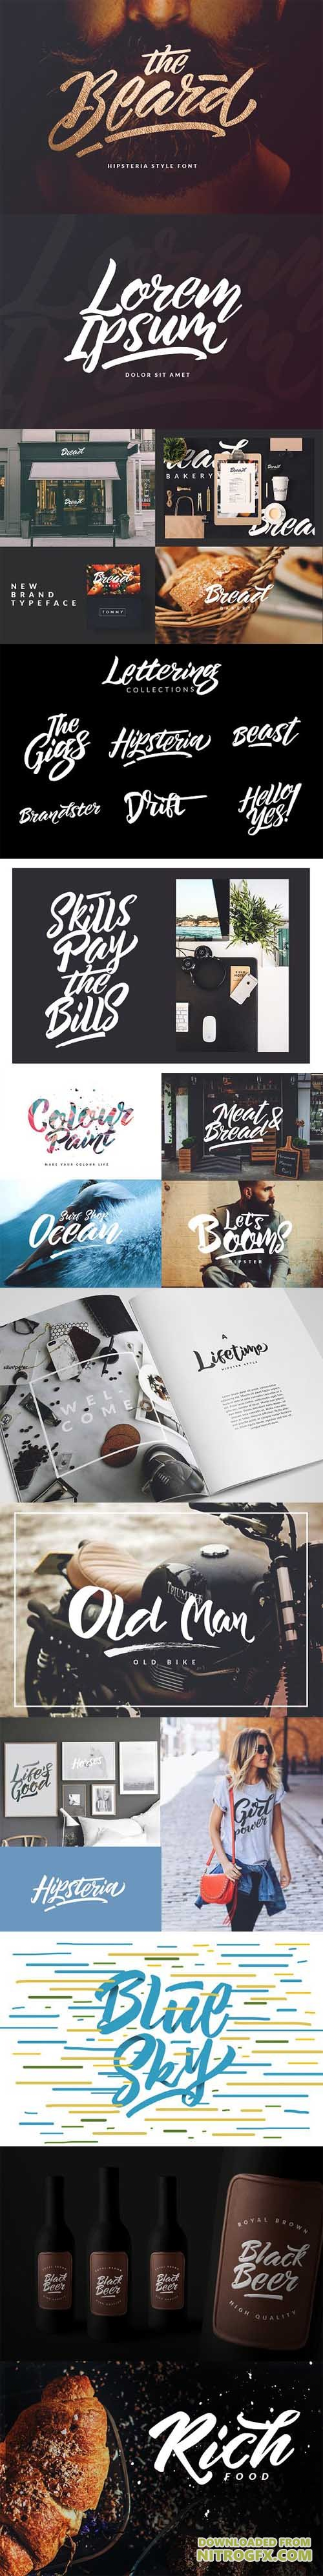 The Beard - Branded Typeface +Extras 869235